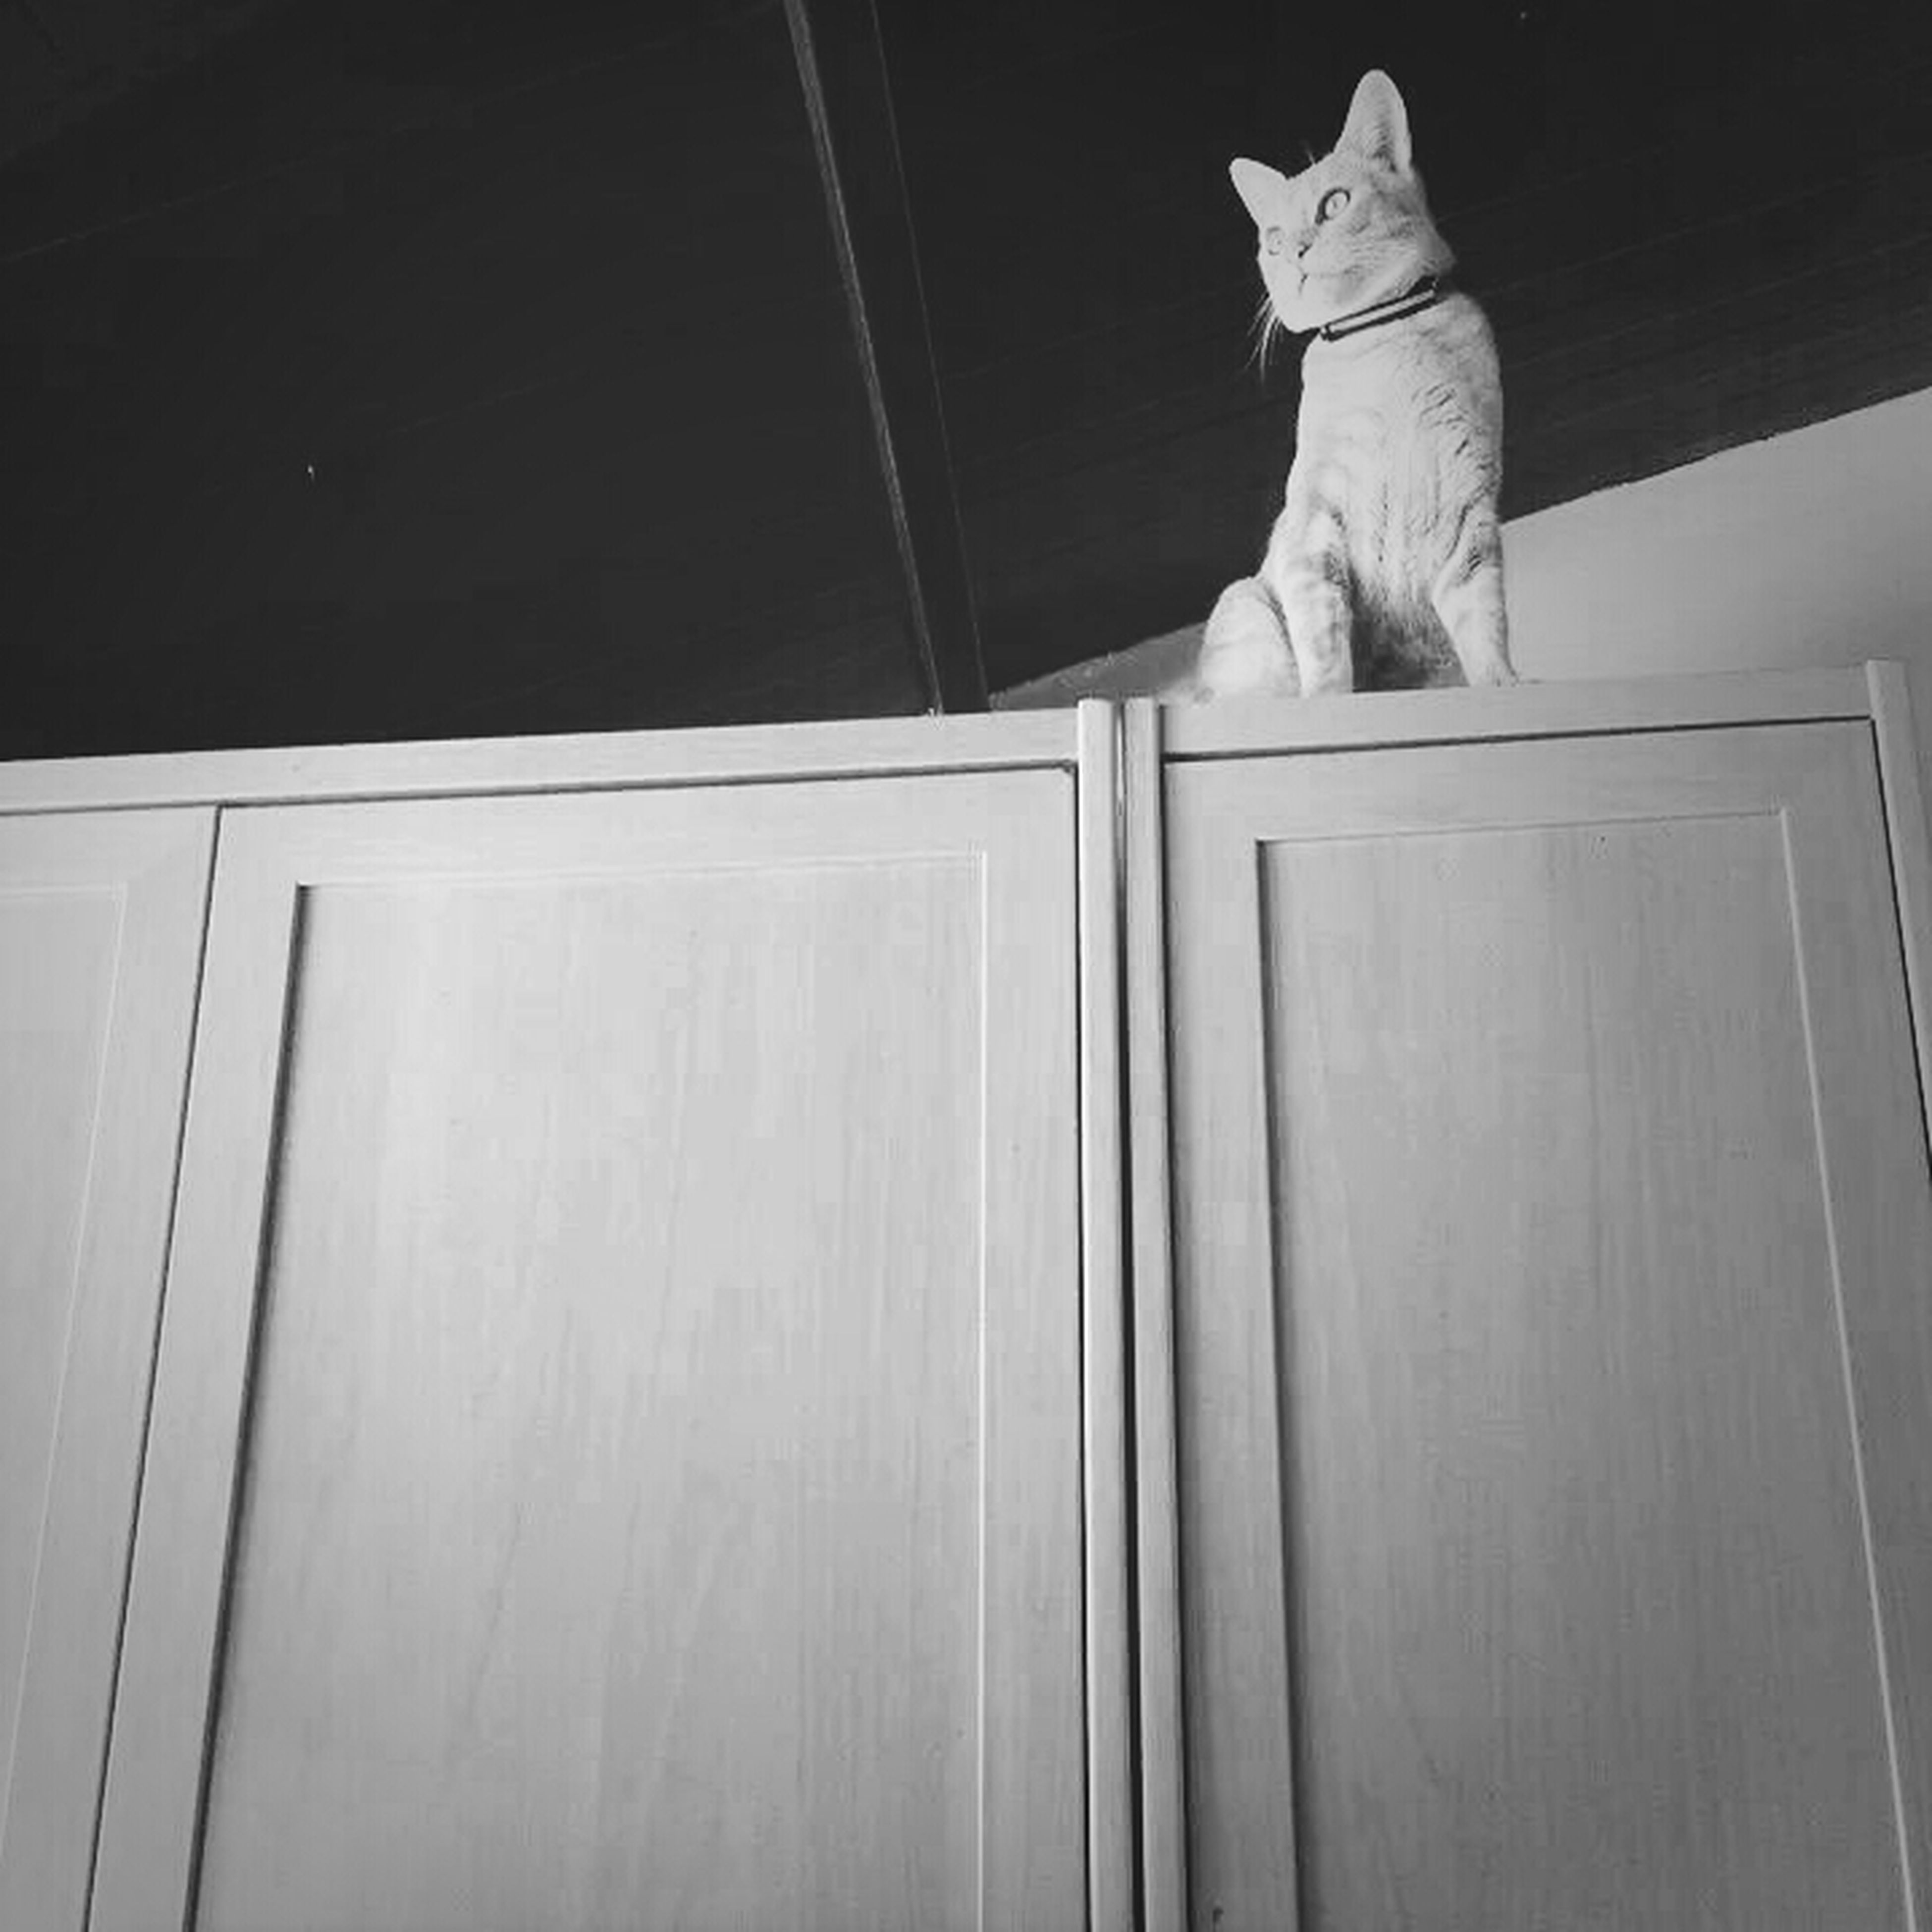 indoors, animal themes, one animal, cat, domestic cat, built structure, wall - building feature, door, architecture, wood - material, domestic animals, wall, pets, no people, feline, low angle view, house, mammal, home interior, wooden